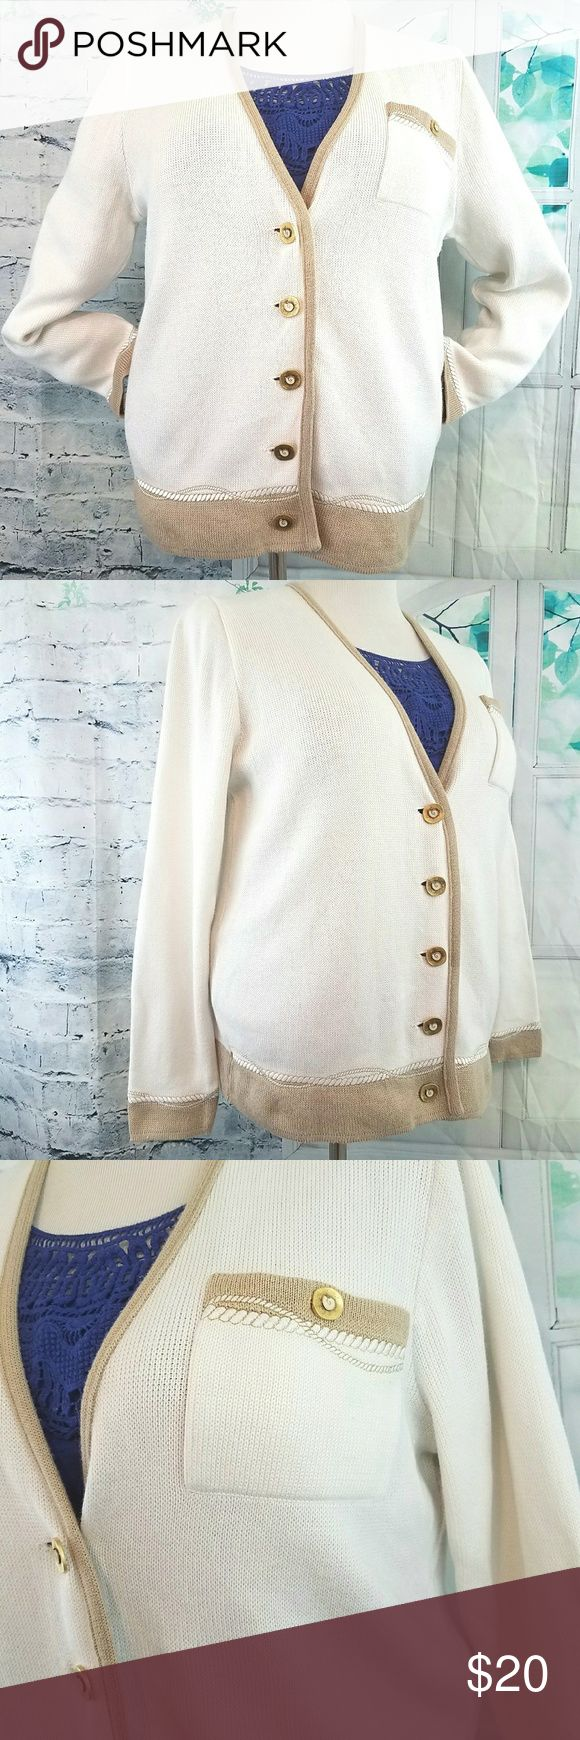 "Lucia Nautical Cardigan Sweater German size 38= US size 8 or Medium Bust: 42"" Waist: 42"" Hip: 42"" Length: 25"" Mid-weight polyester/acrylic knit.  Eggshell & tan with embroidered accent stitching.  Good condition Lucia Sweaters Cardigans"